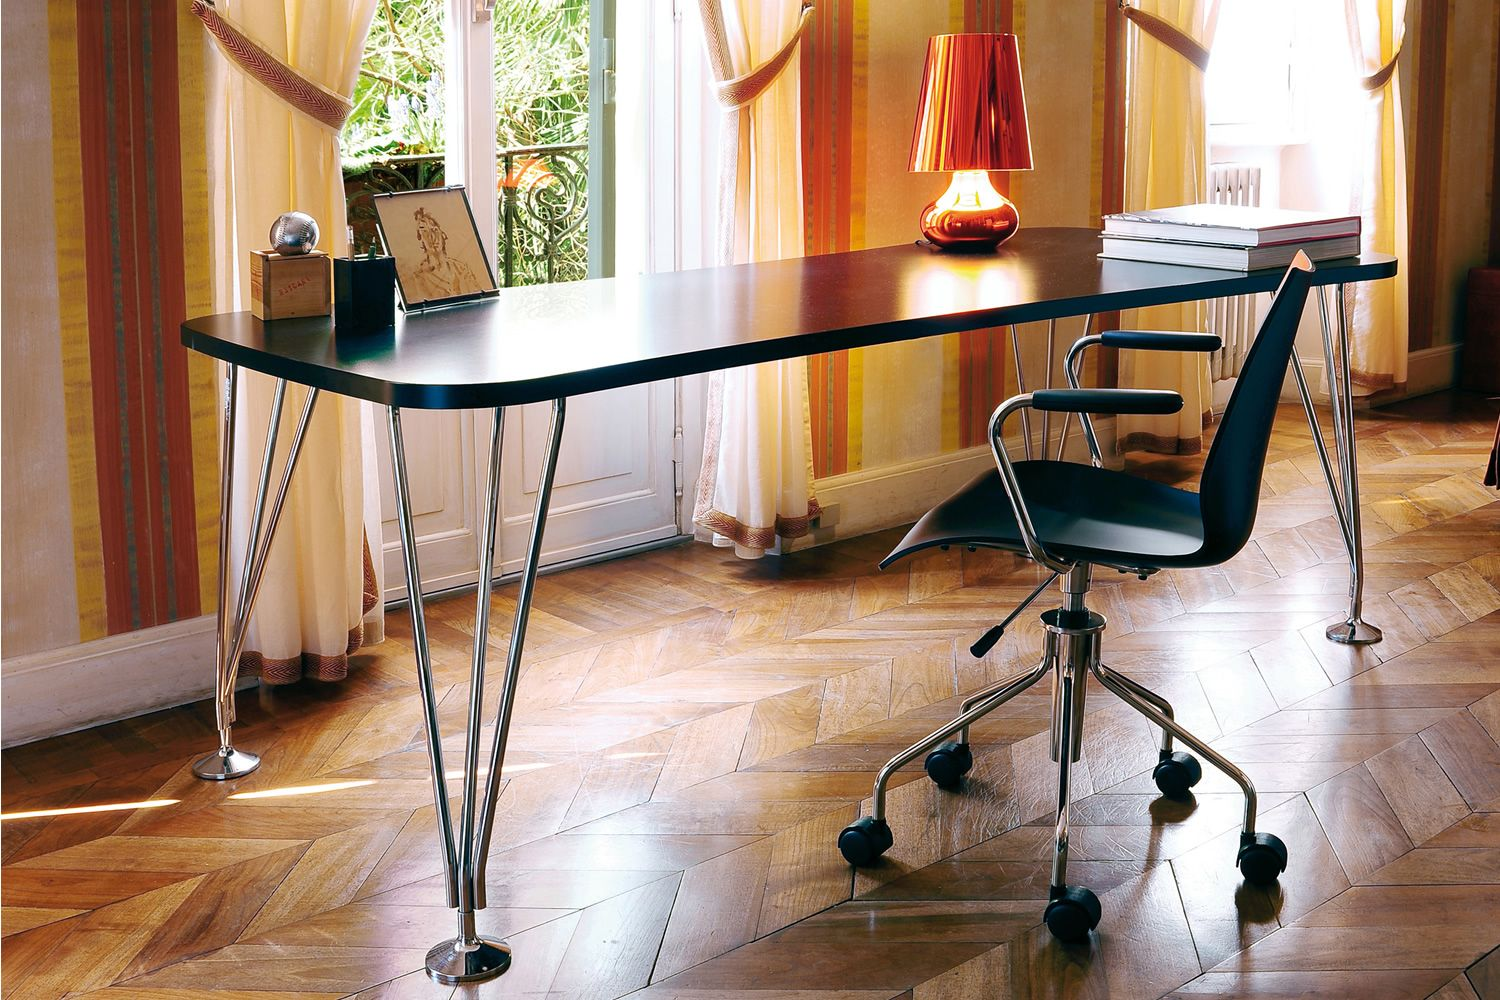 Max design kartell table desk in steel and laminated wood with